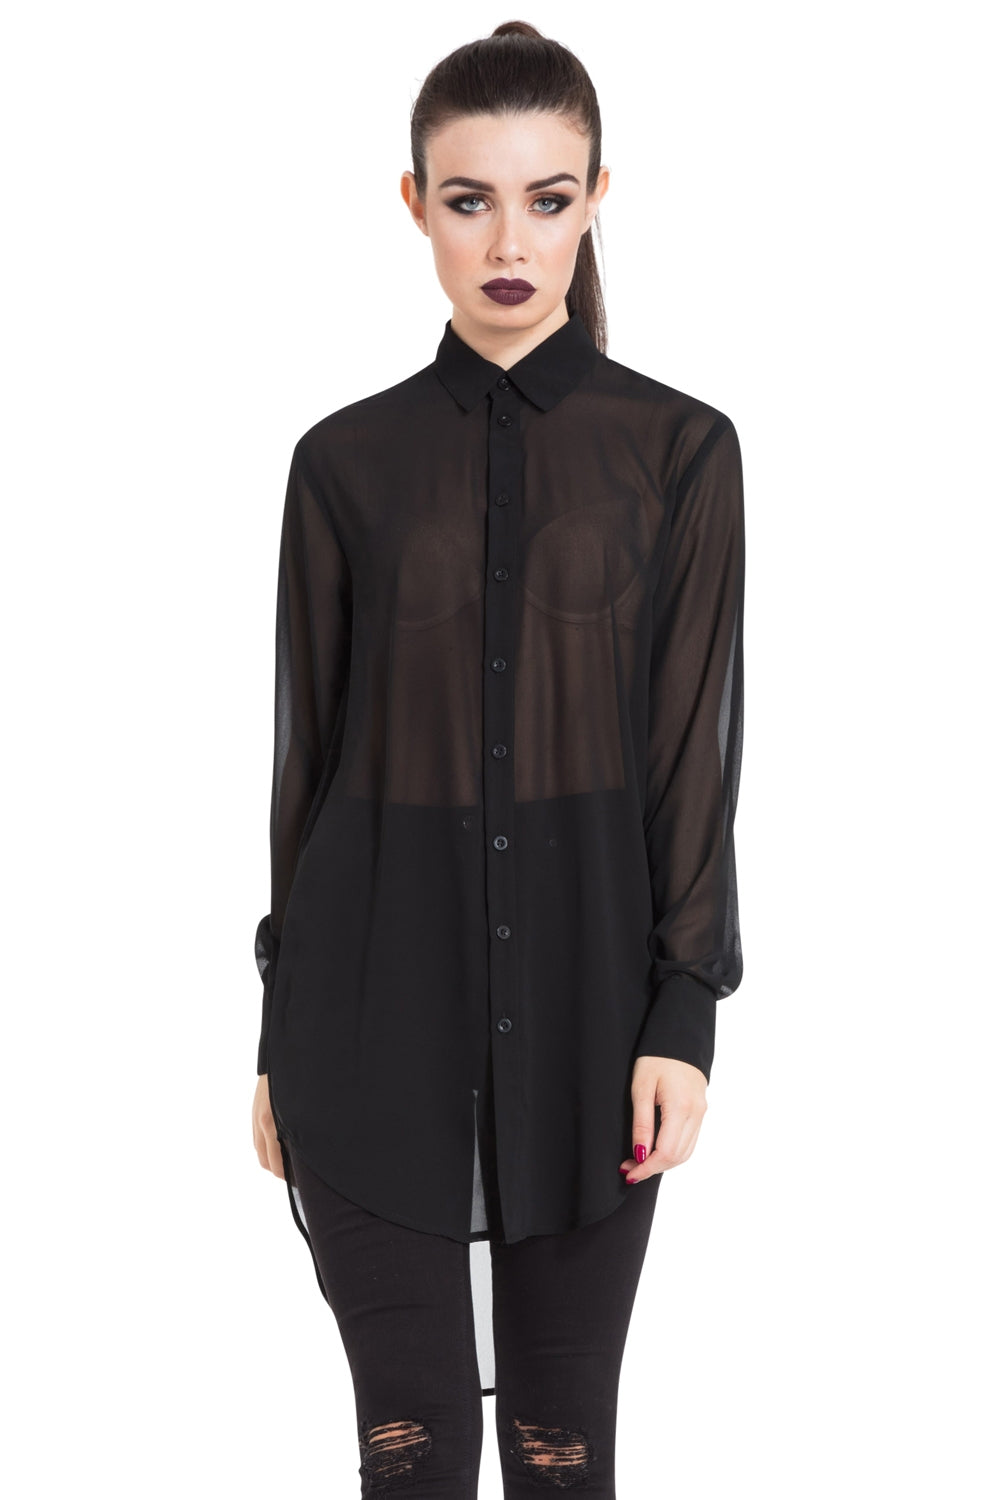 One Direction Black Chiffon Boyfriend Shirt